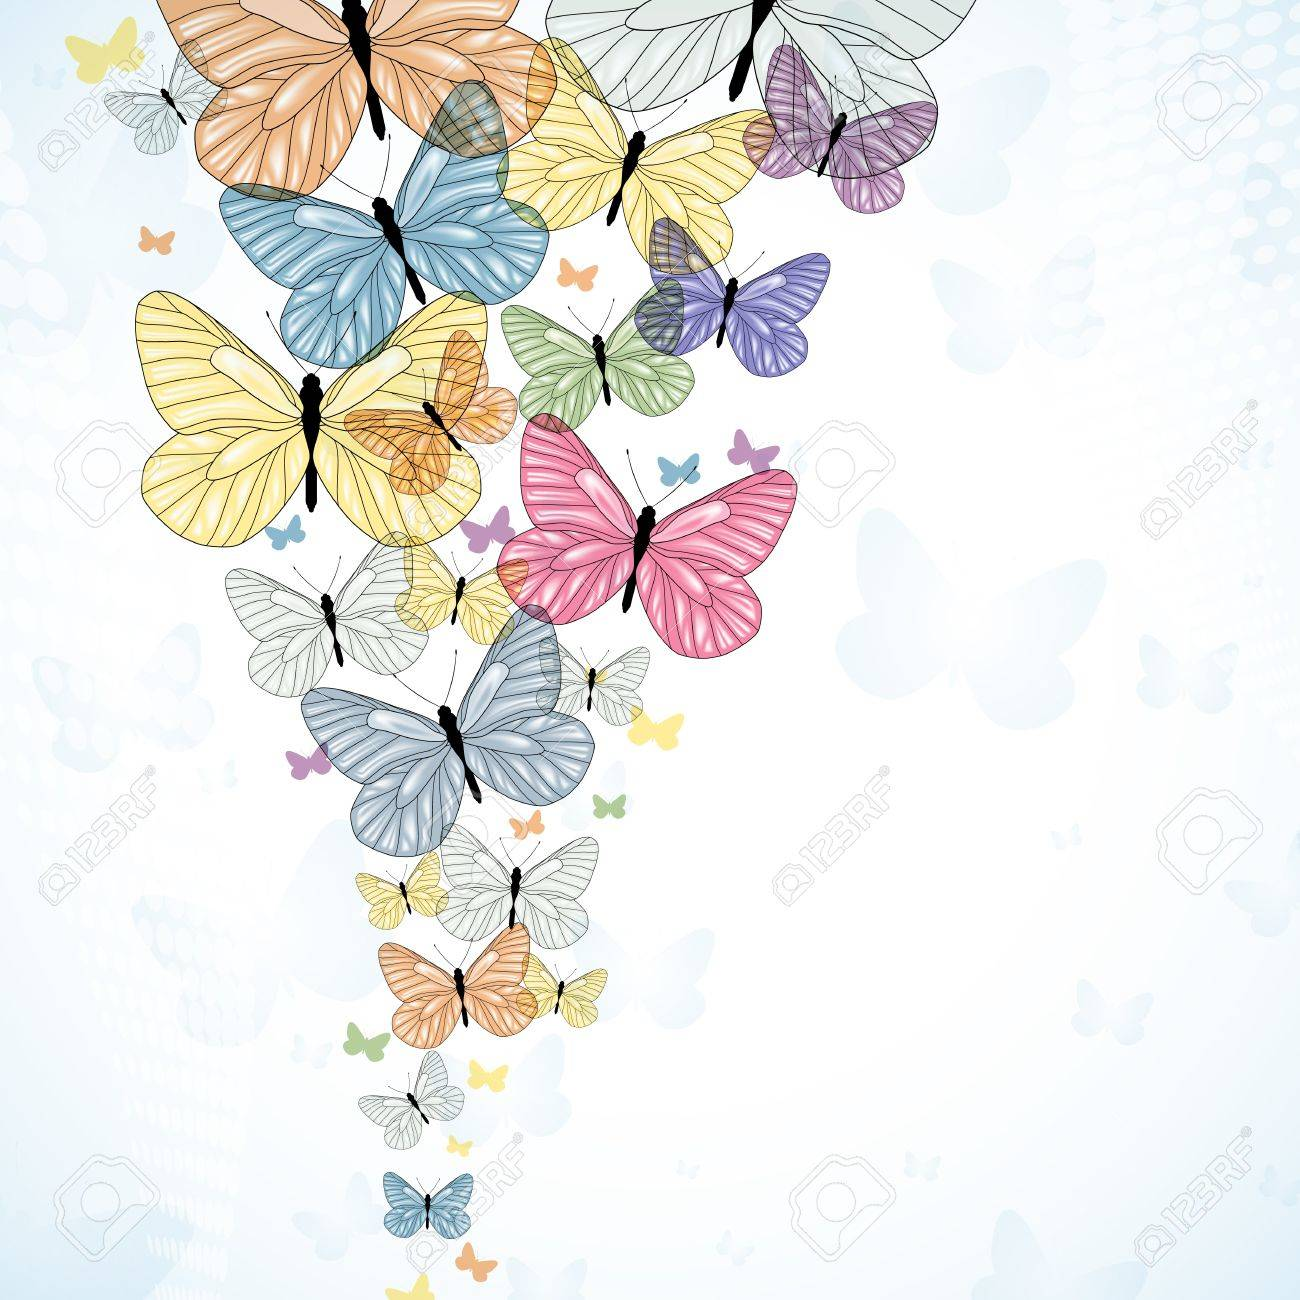 Pink butterfly vector background hd wallpapers pink butterfly vector - Butterfly Background Abstarct Background With Colorfull Butterfly Vector